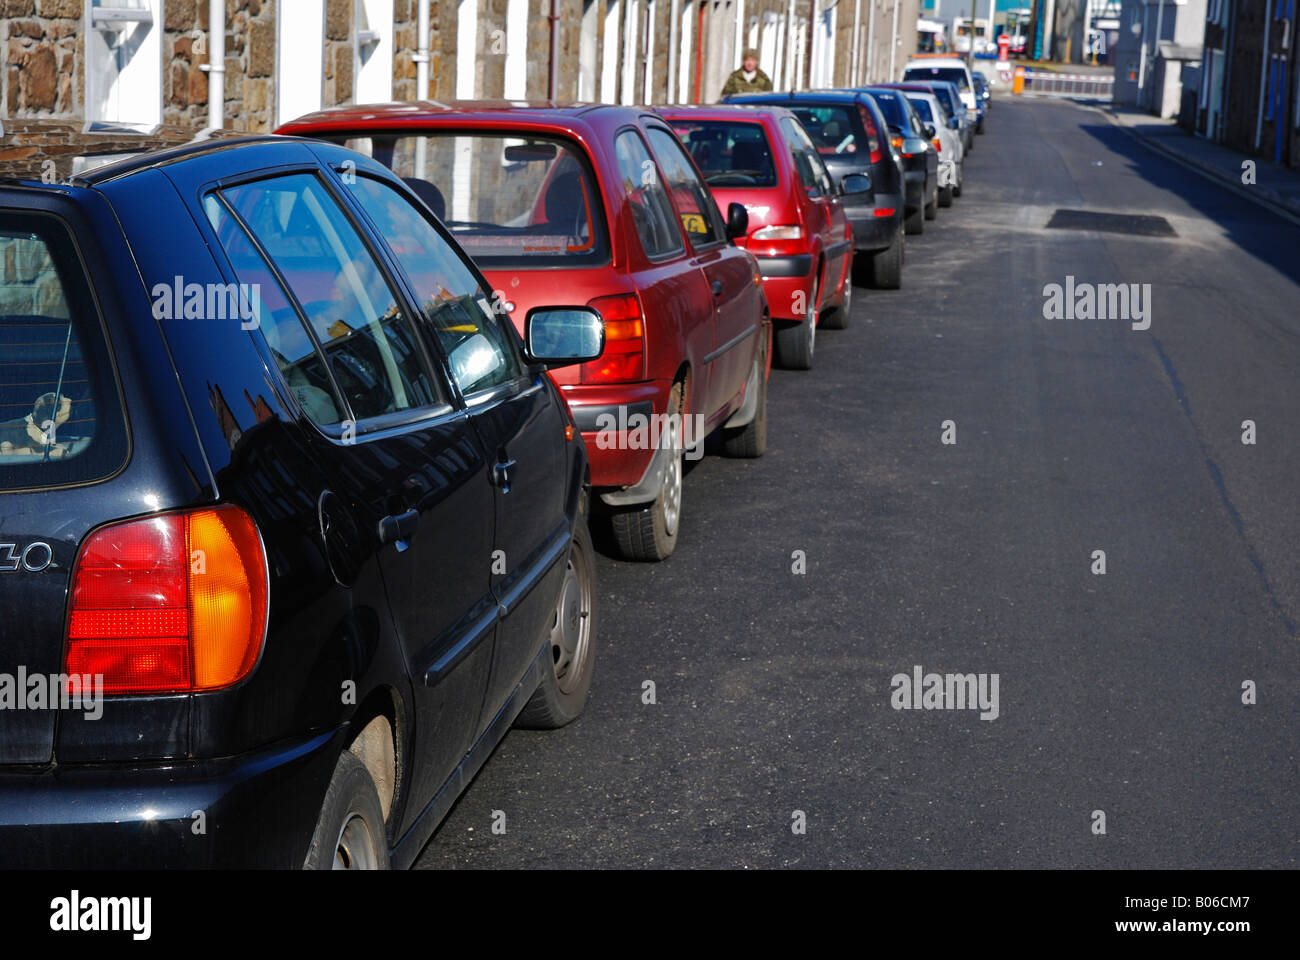 a row of parked cars in a narrow street in camborne,cornwall,england - Stock Image